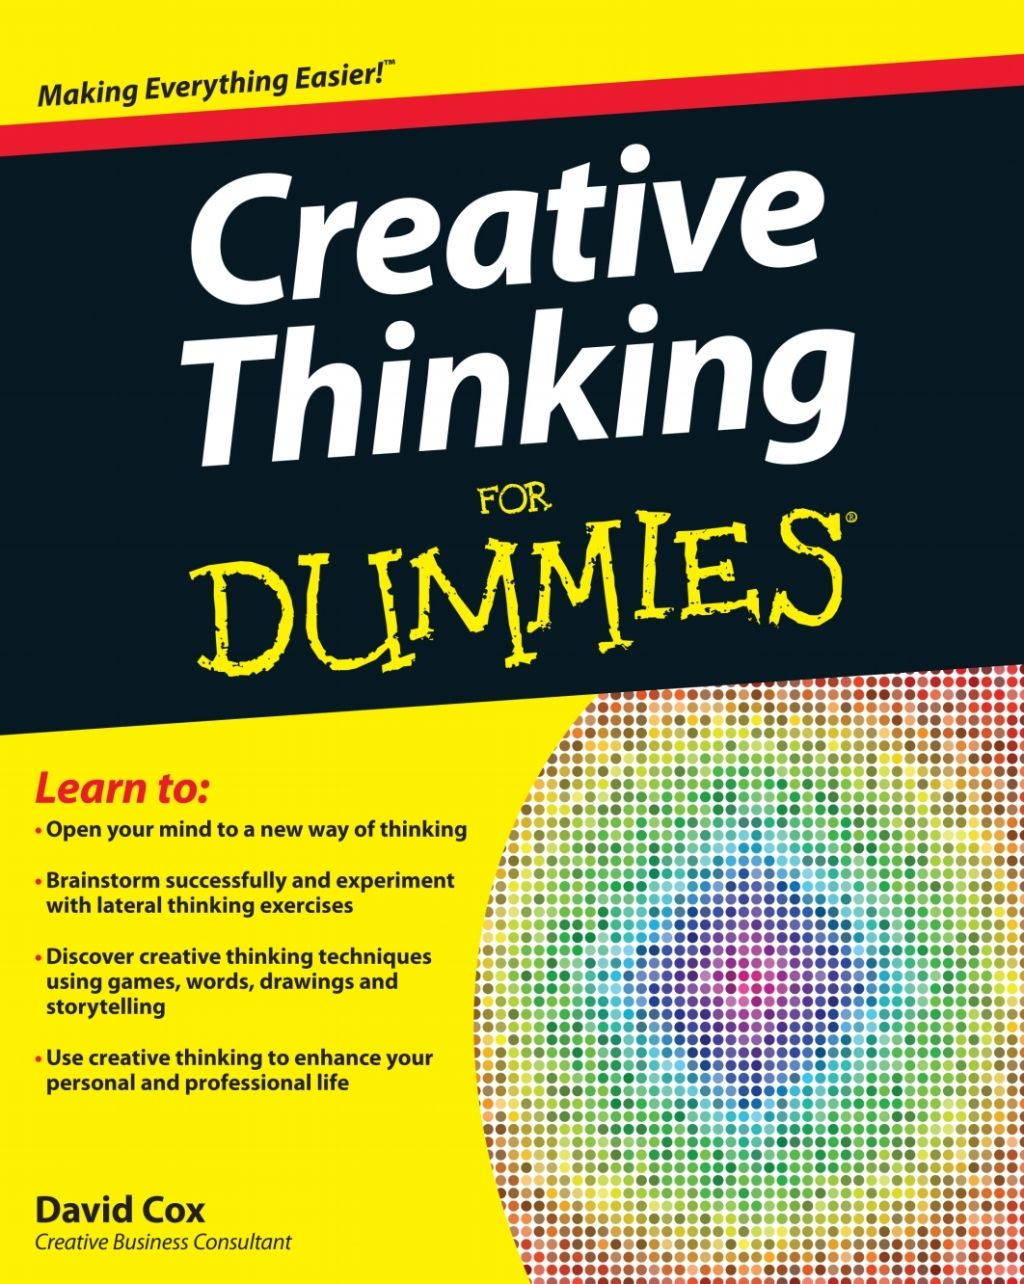 Creative Thinking For Dummies Ebook Dummies Book Creative Thinking Lateral Thinking